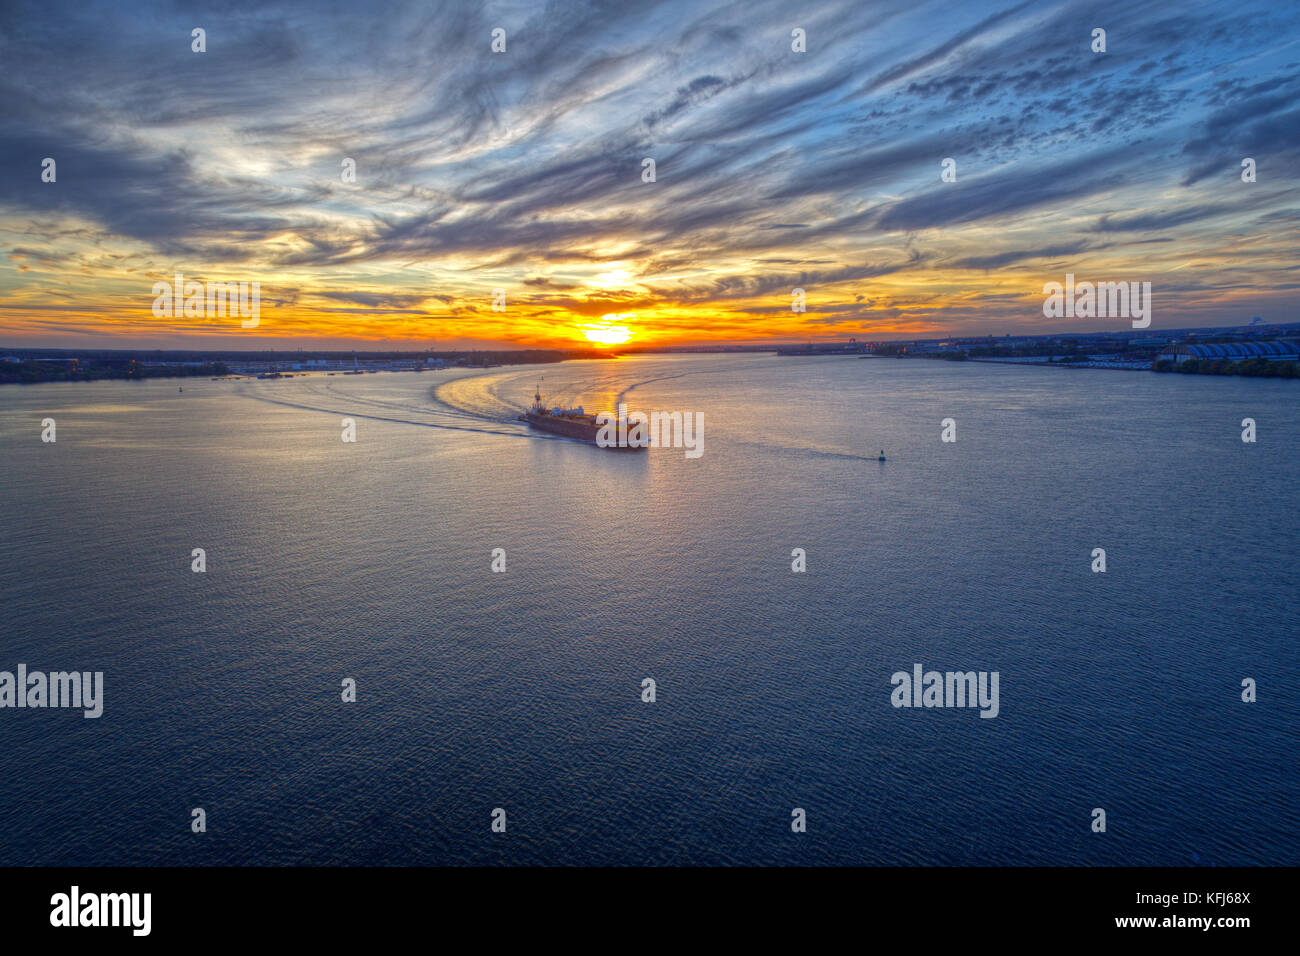 Aerial View of Sunset over Water with Cargo Ship - Stock Image